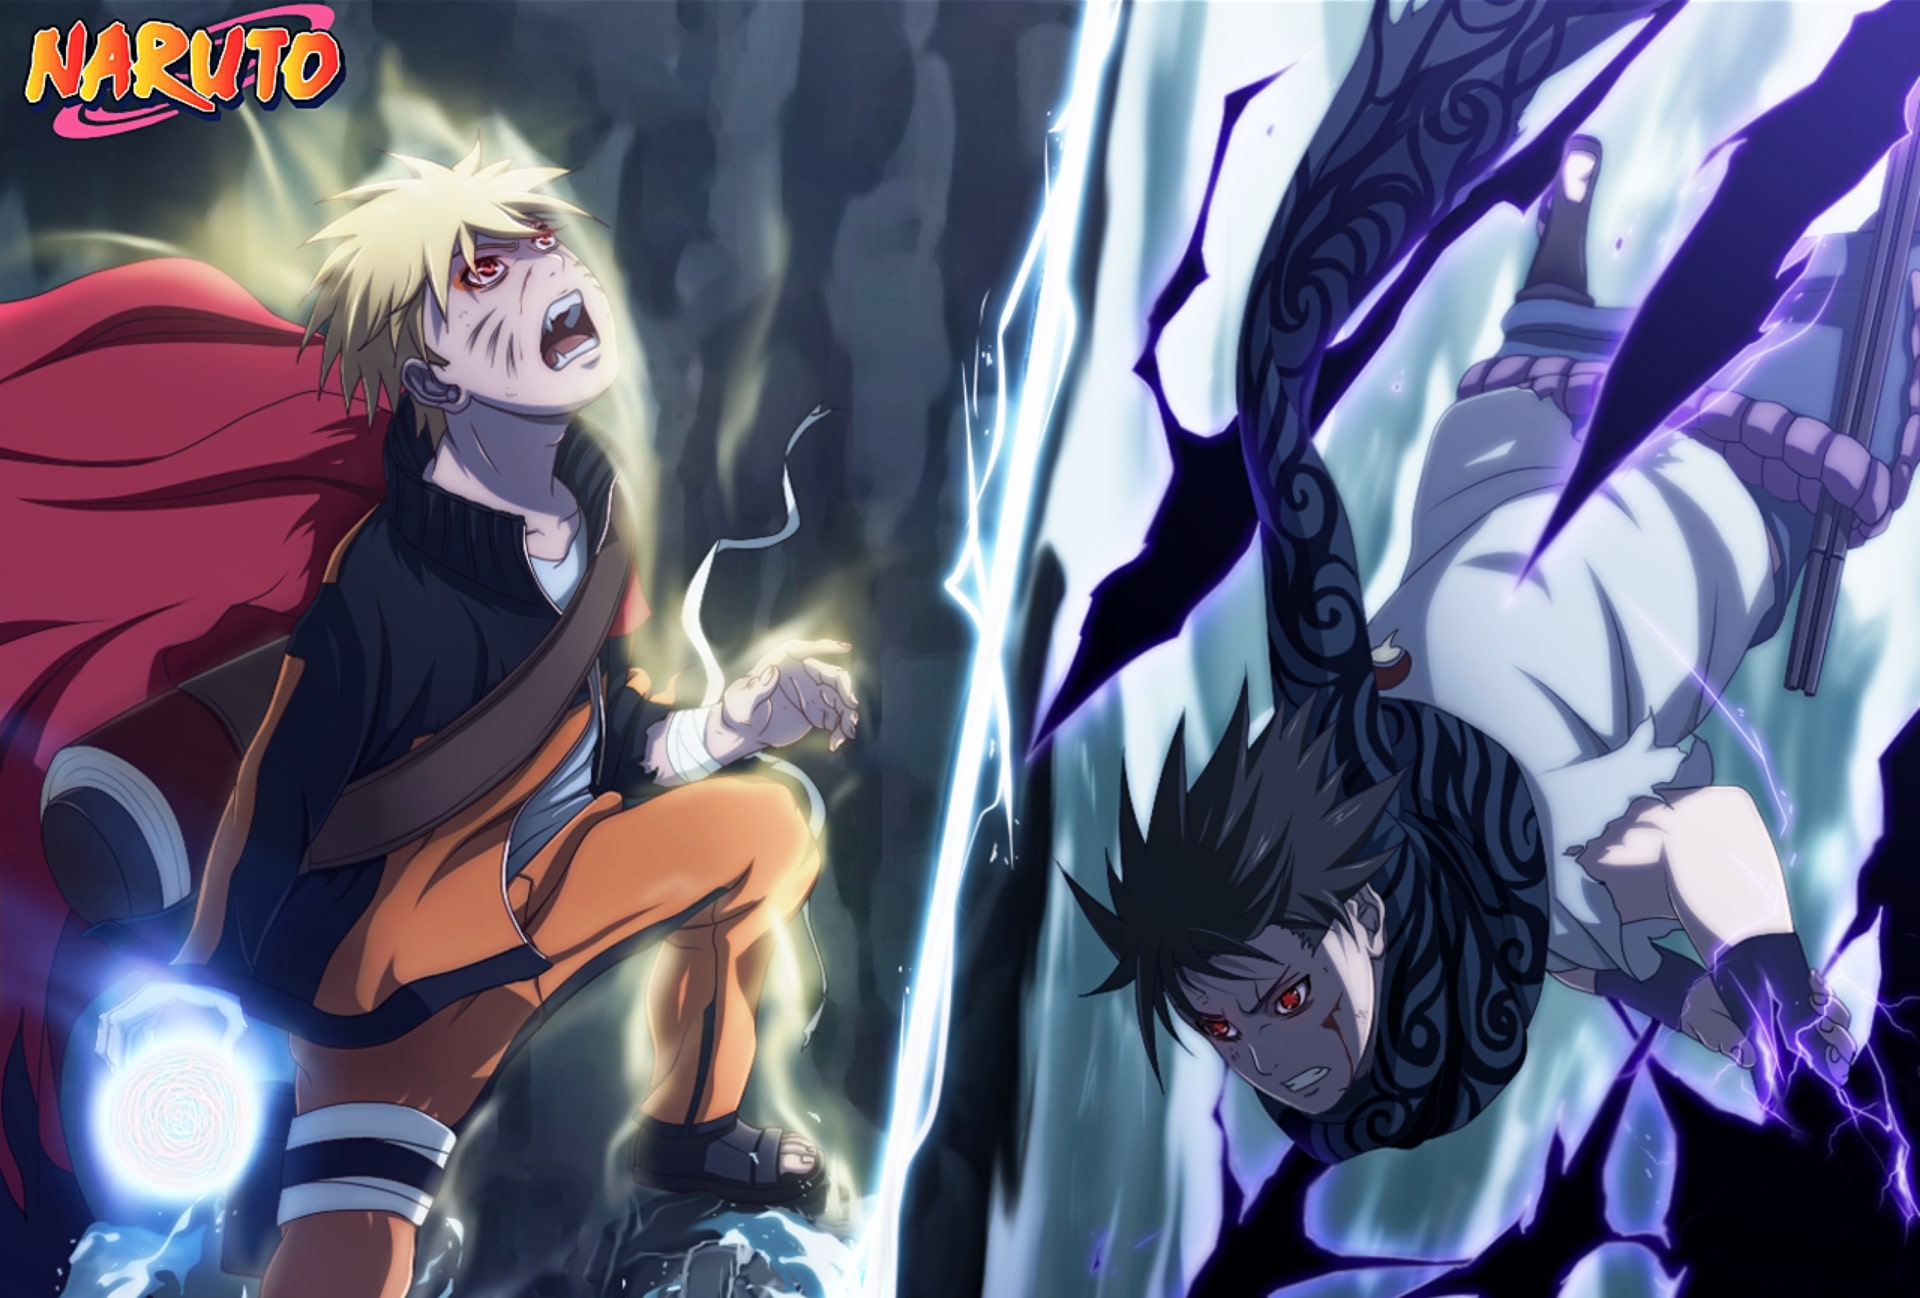 Hd wallpaper anime fight naruto uzumaki sasuke uchiha